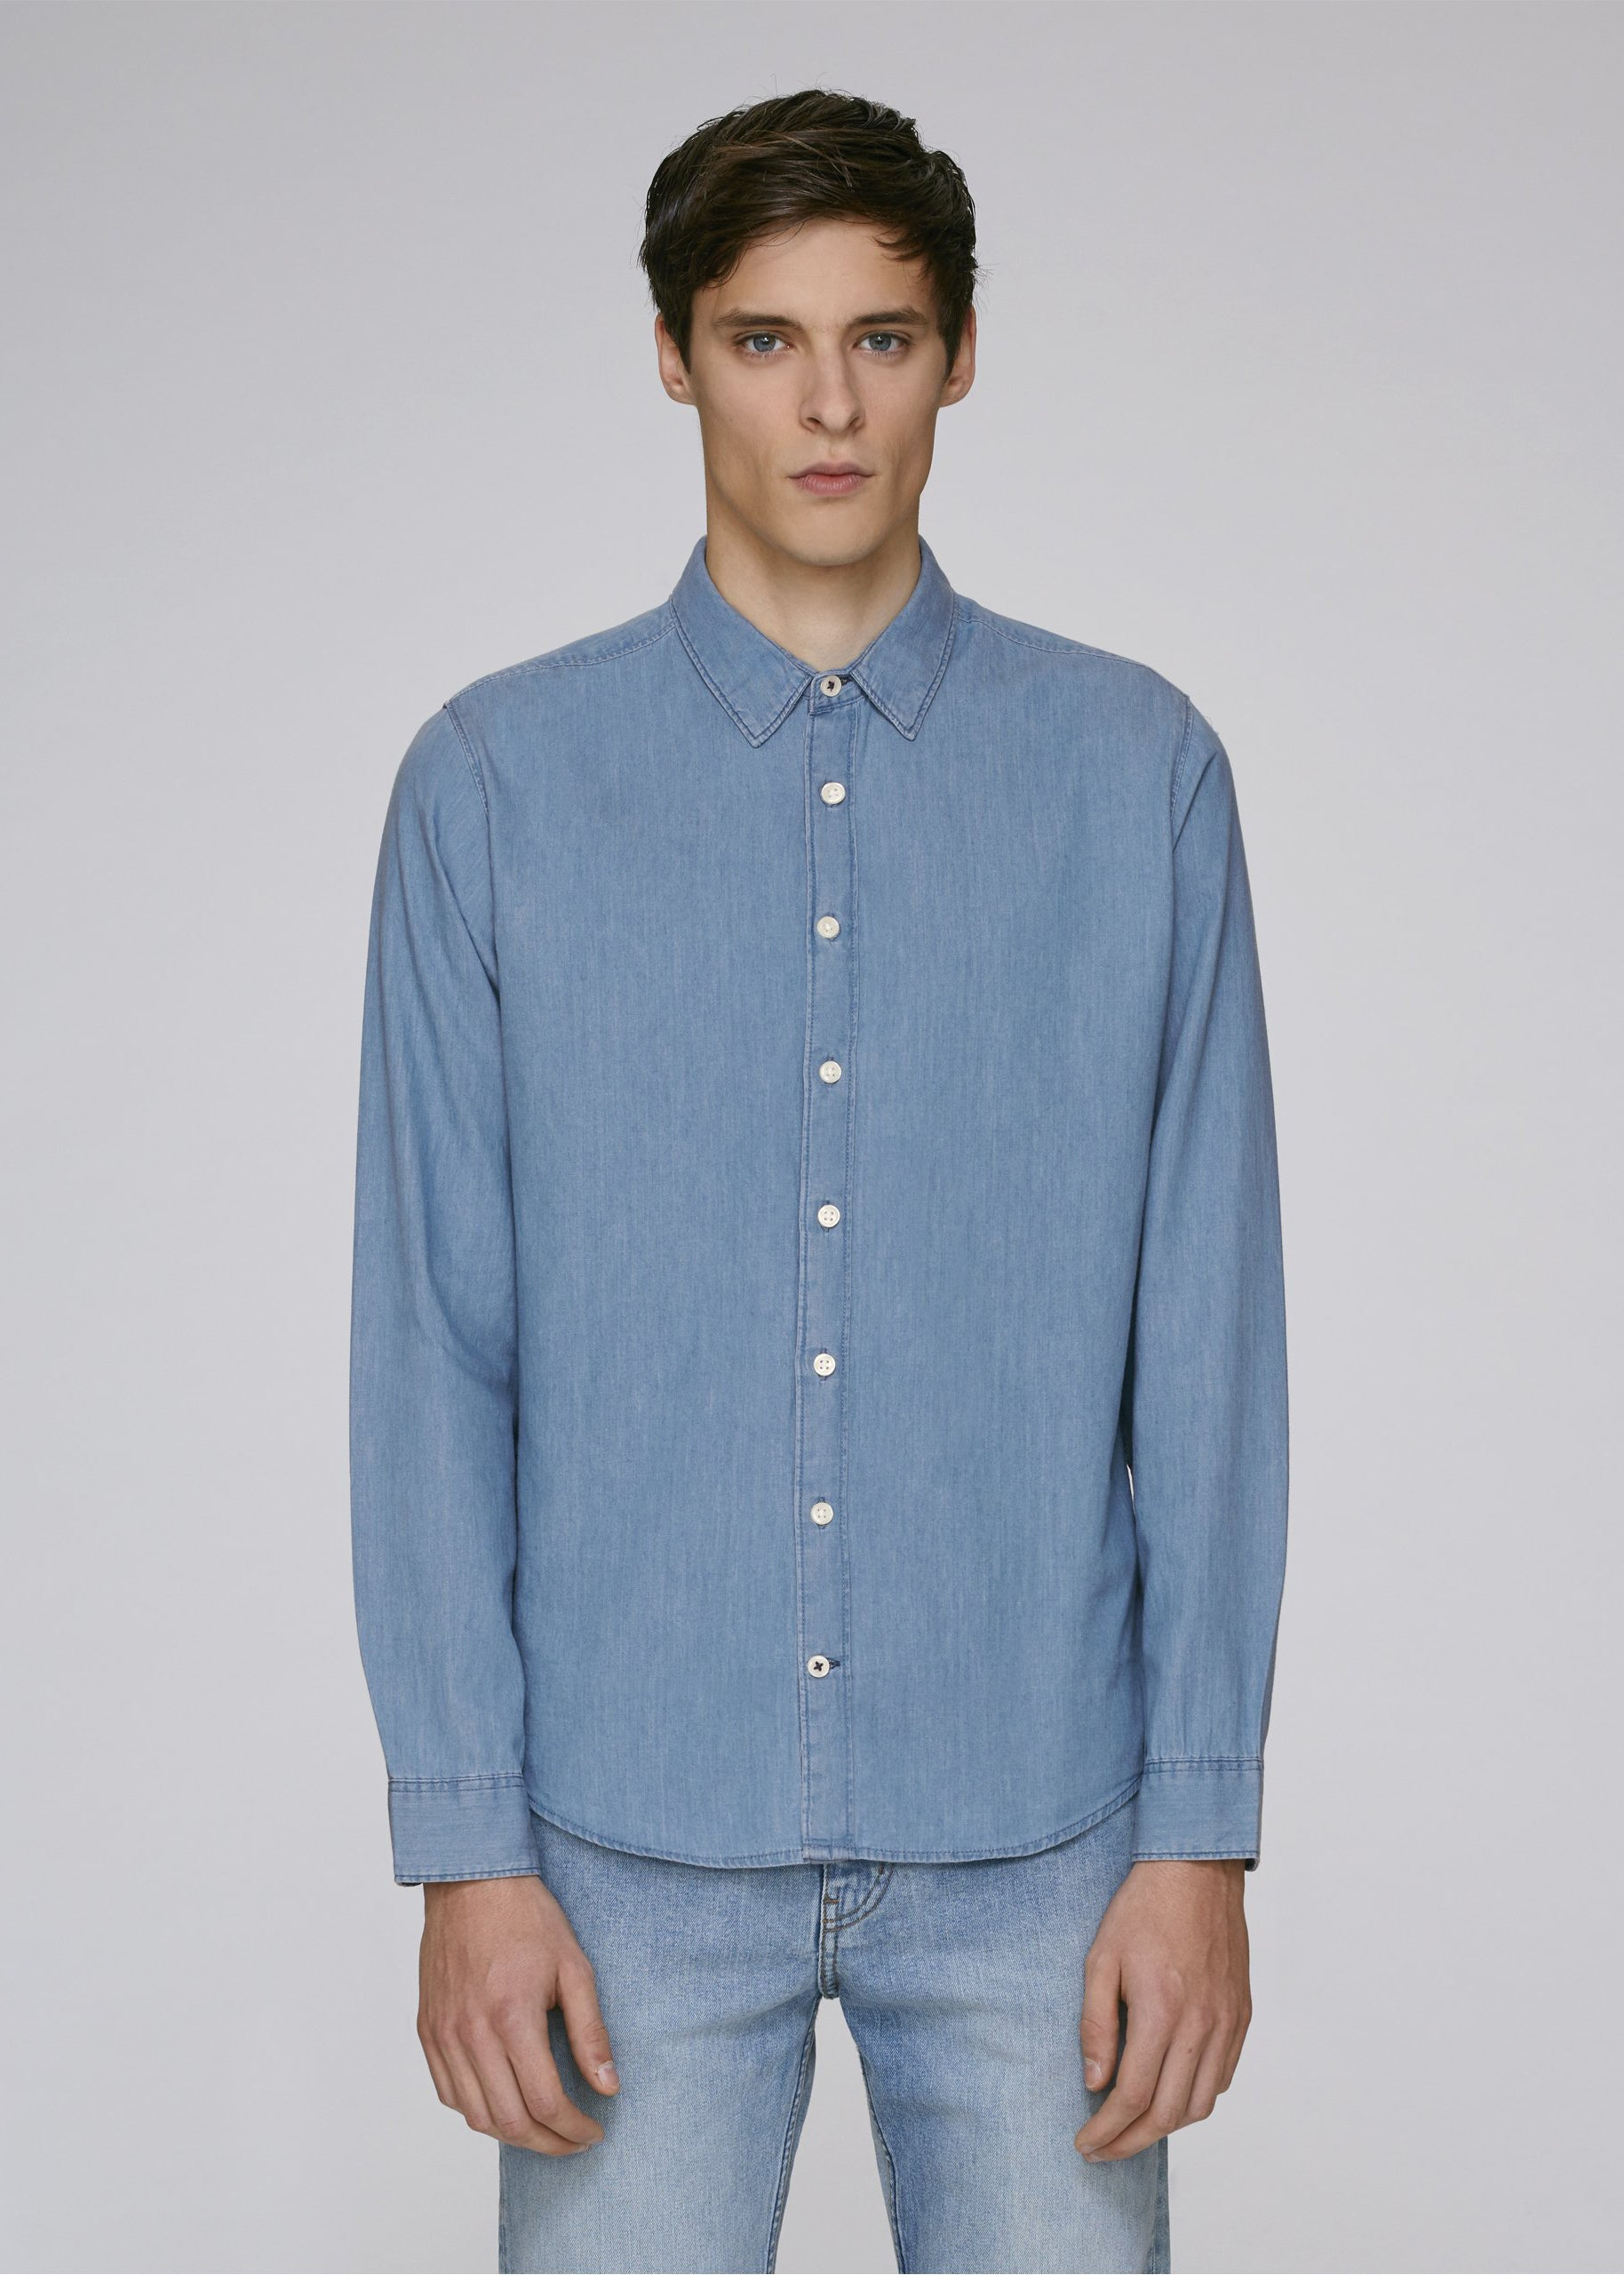 He Innovates Light Indigo Denim-Shirt-Sancho's Dress